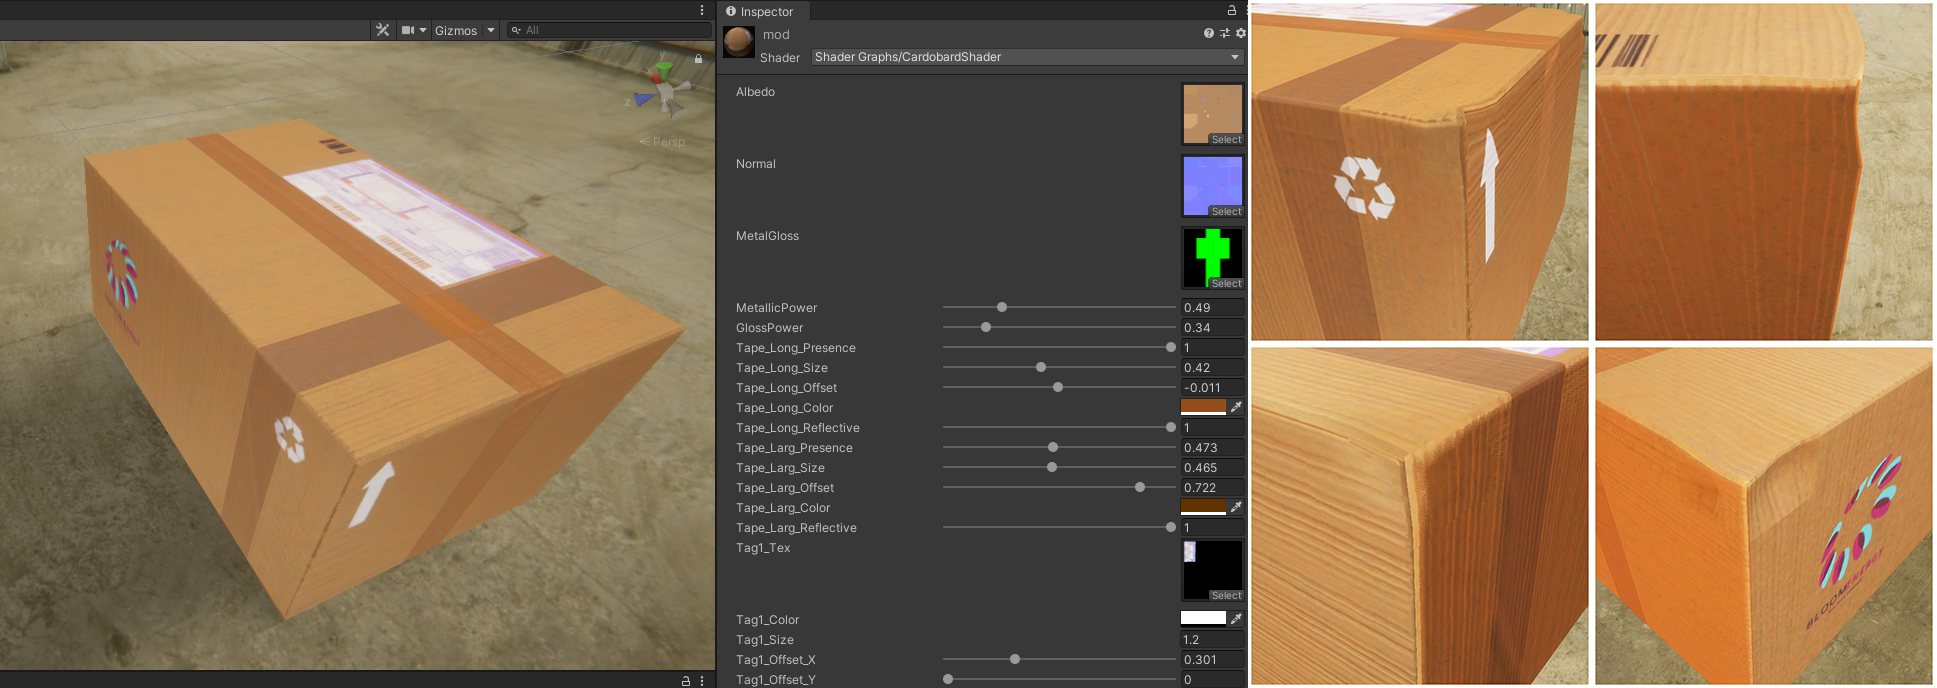 Screenshot of the Unity editor where shader-based cardboard boxes are being edited